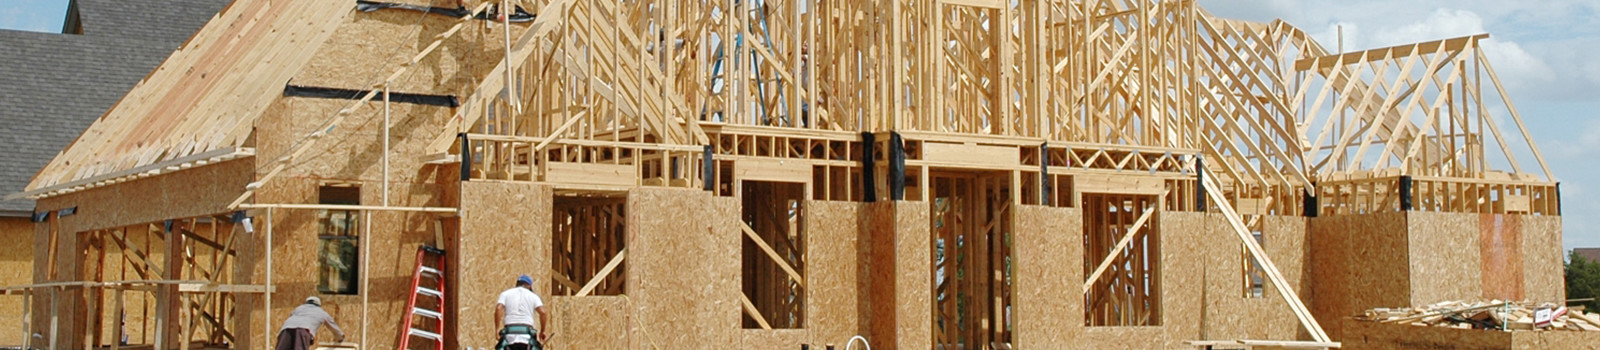 Jacksonville Home Remodeling and Renovation